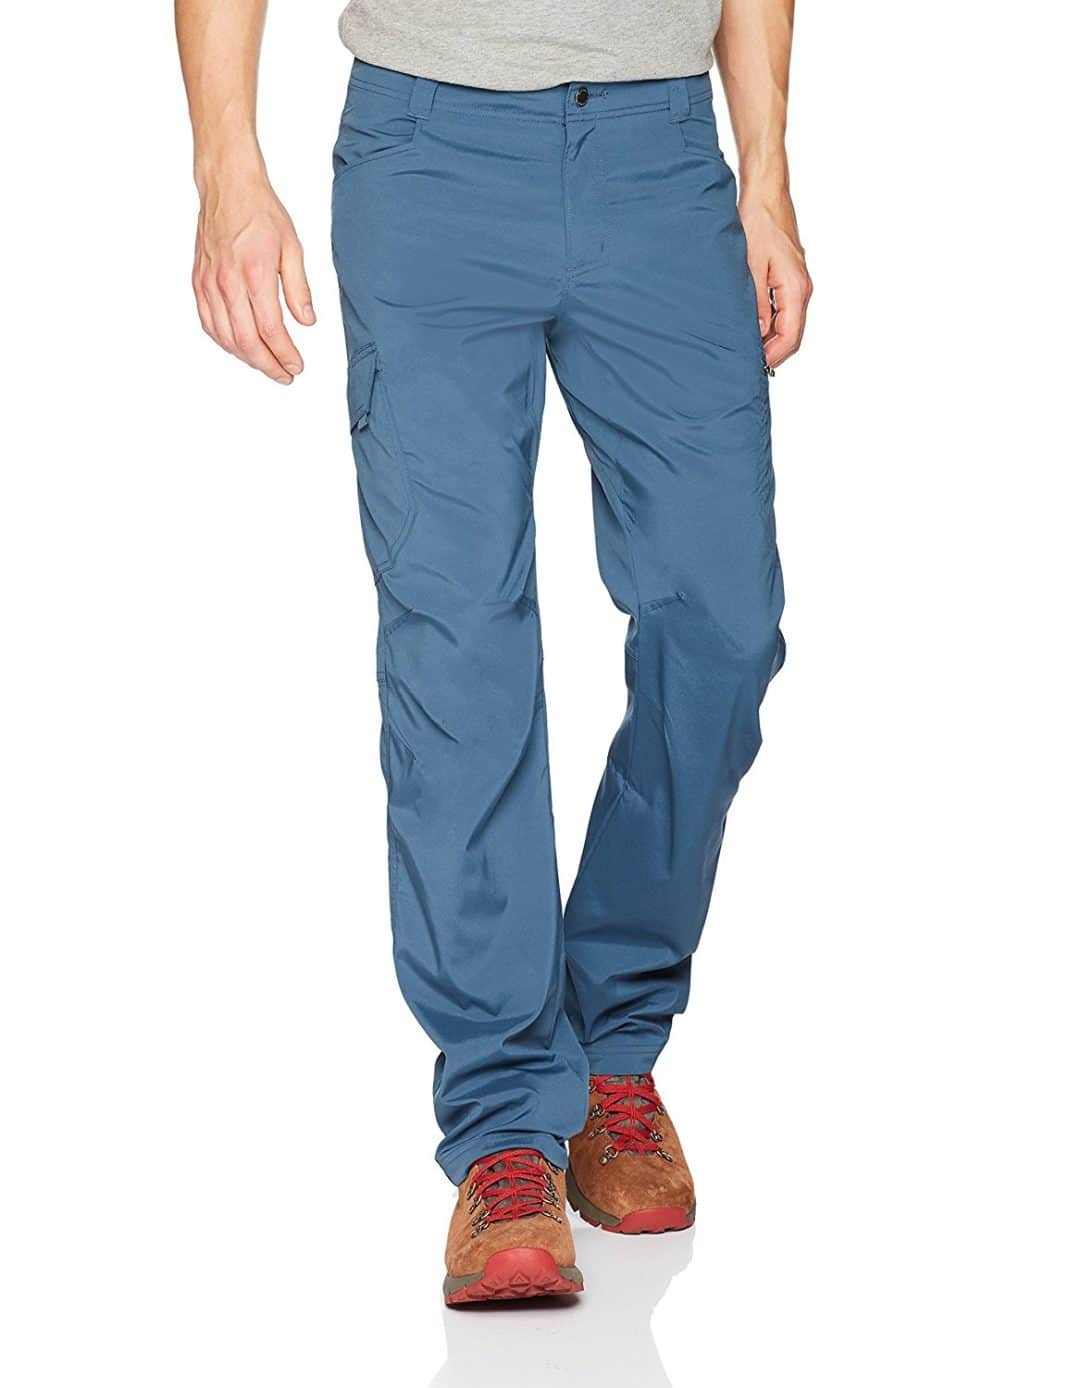 Men's Columbia Silver Ridge Stretch Pants - Style